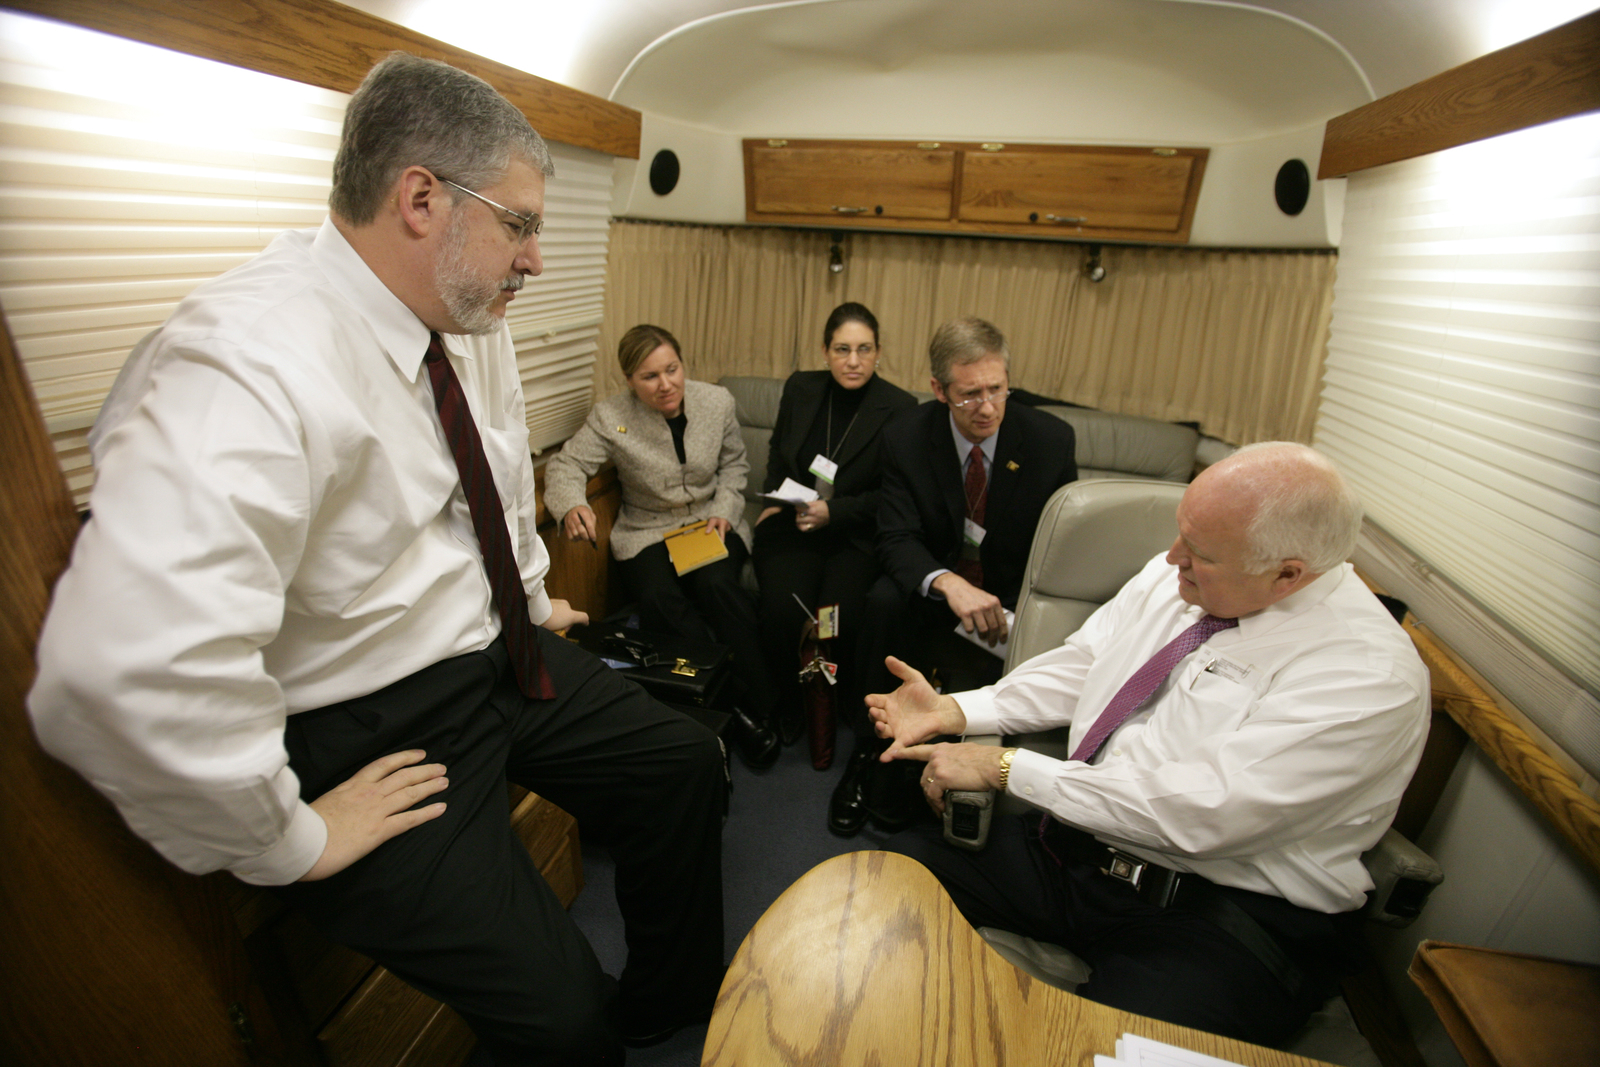 "Vice President Cheney, David Addington, CIA Deputy Director Stephen Kappes, and Vice Presidential Staff Aboard C-17 Aircraft in the ""Silver Bullet"" Stateroom"